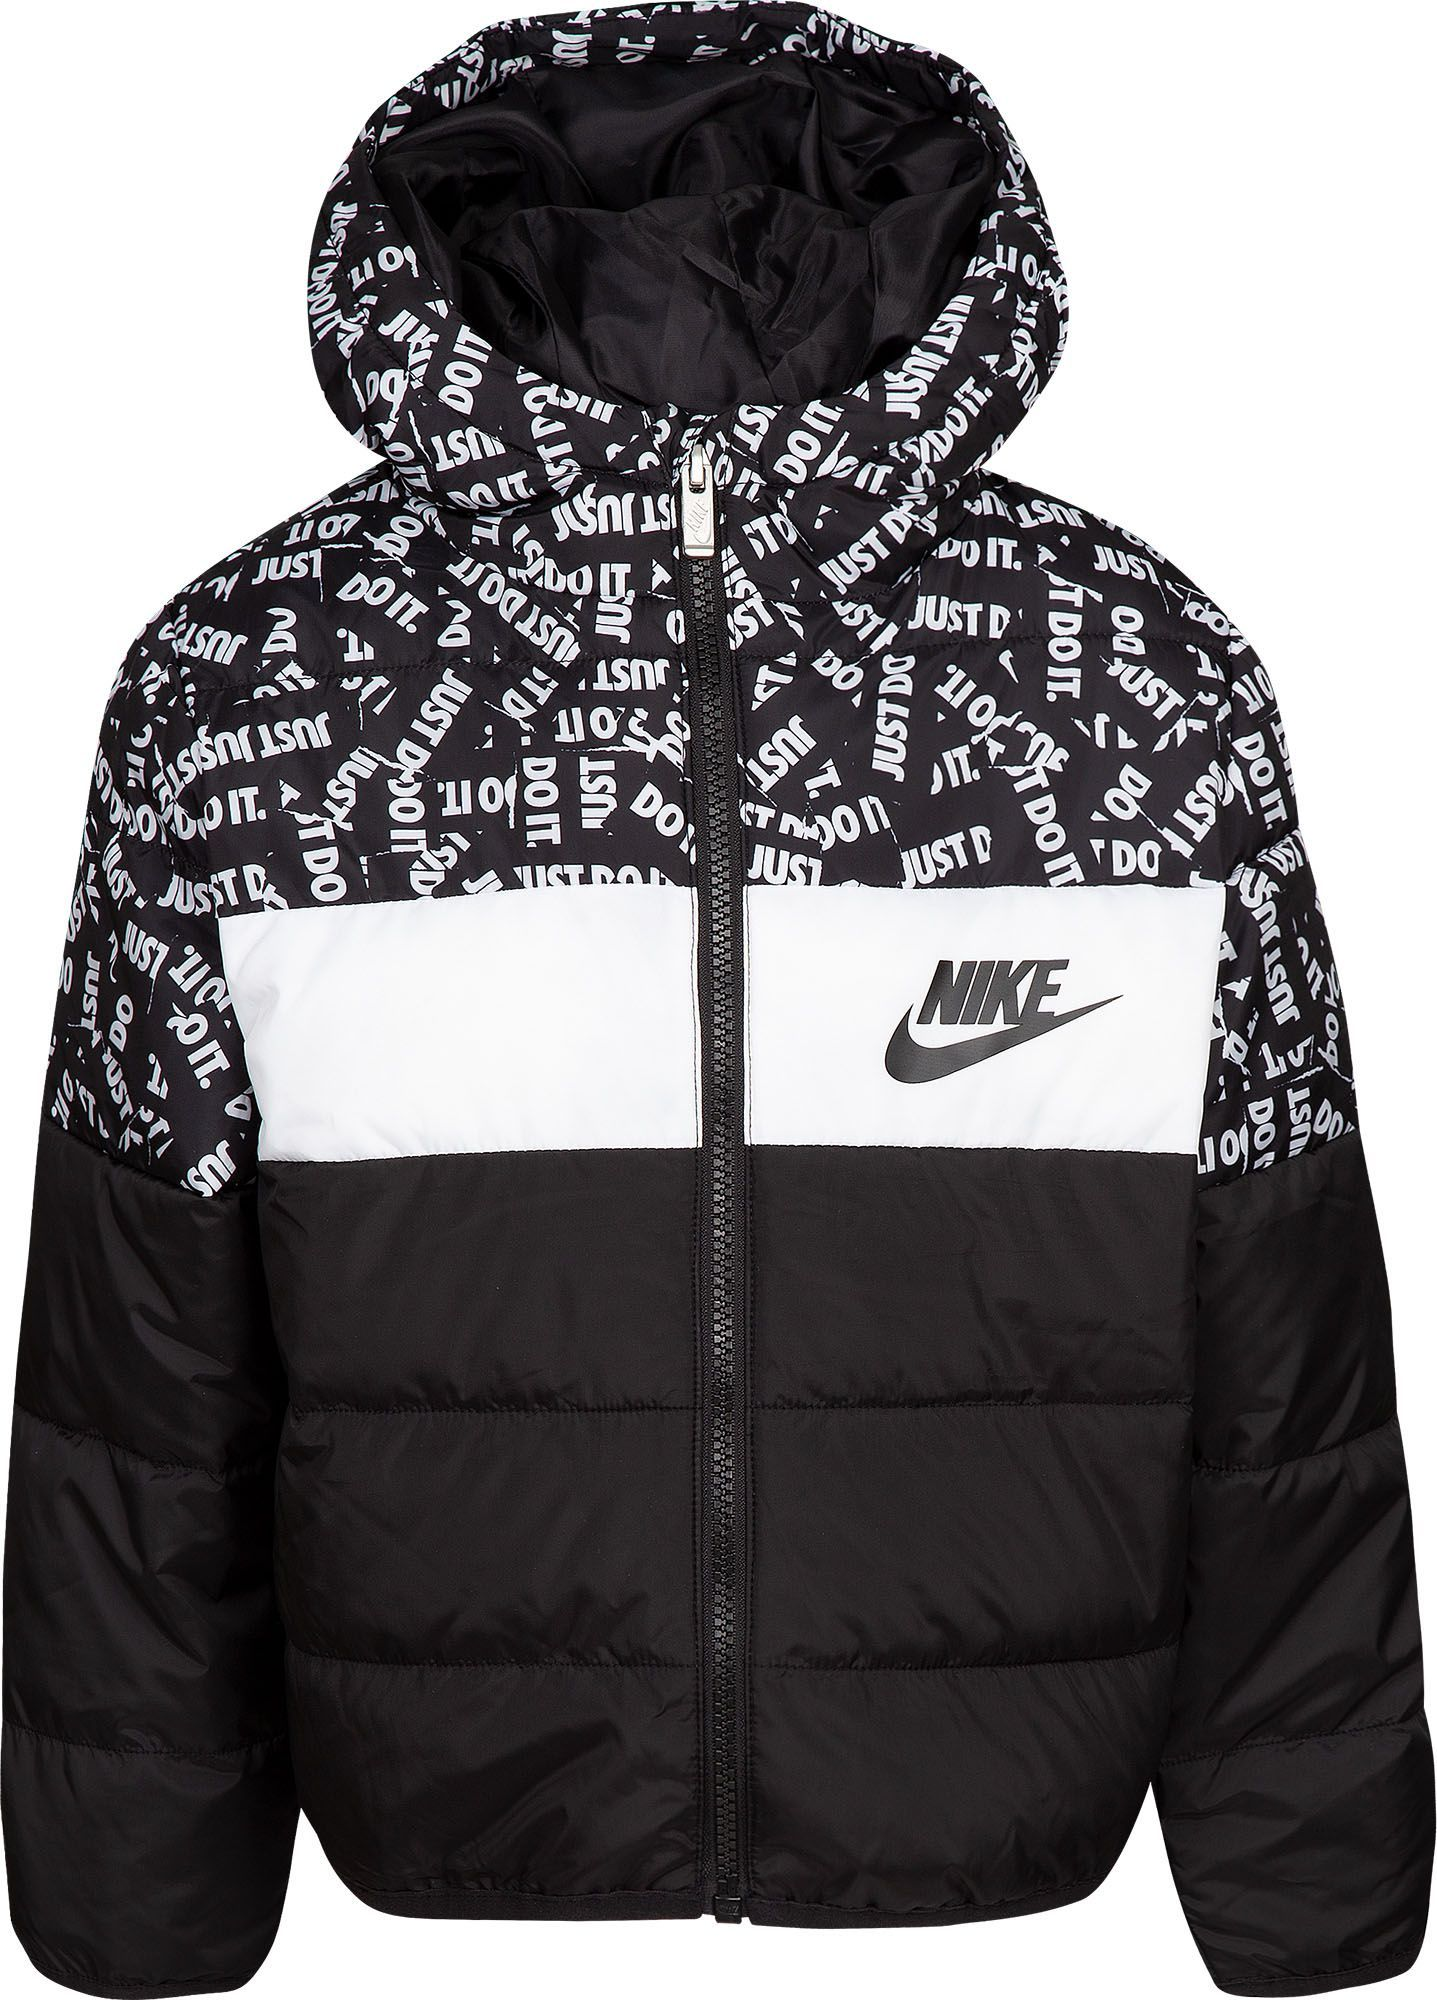 0f8d419d7ed6 Nike Little Boys  Polyfill Blocked Insulated Puffer Jacket in 2019 ...